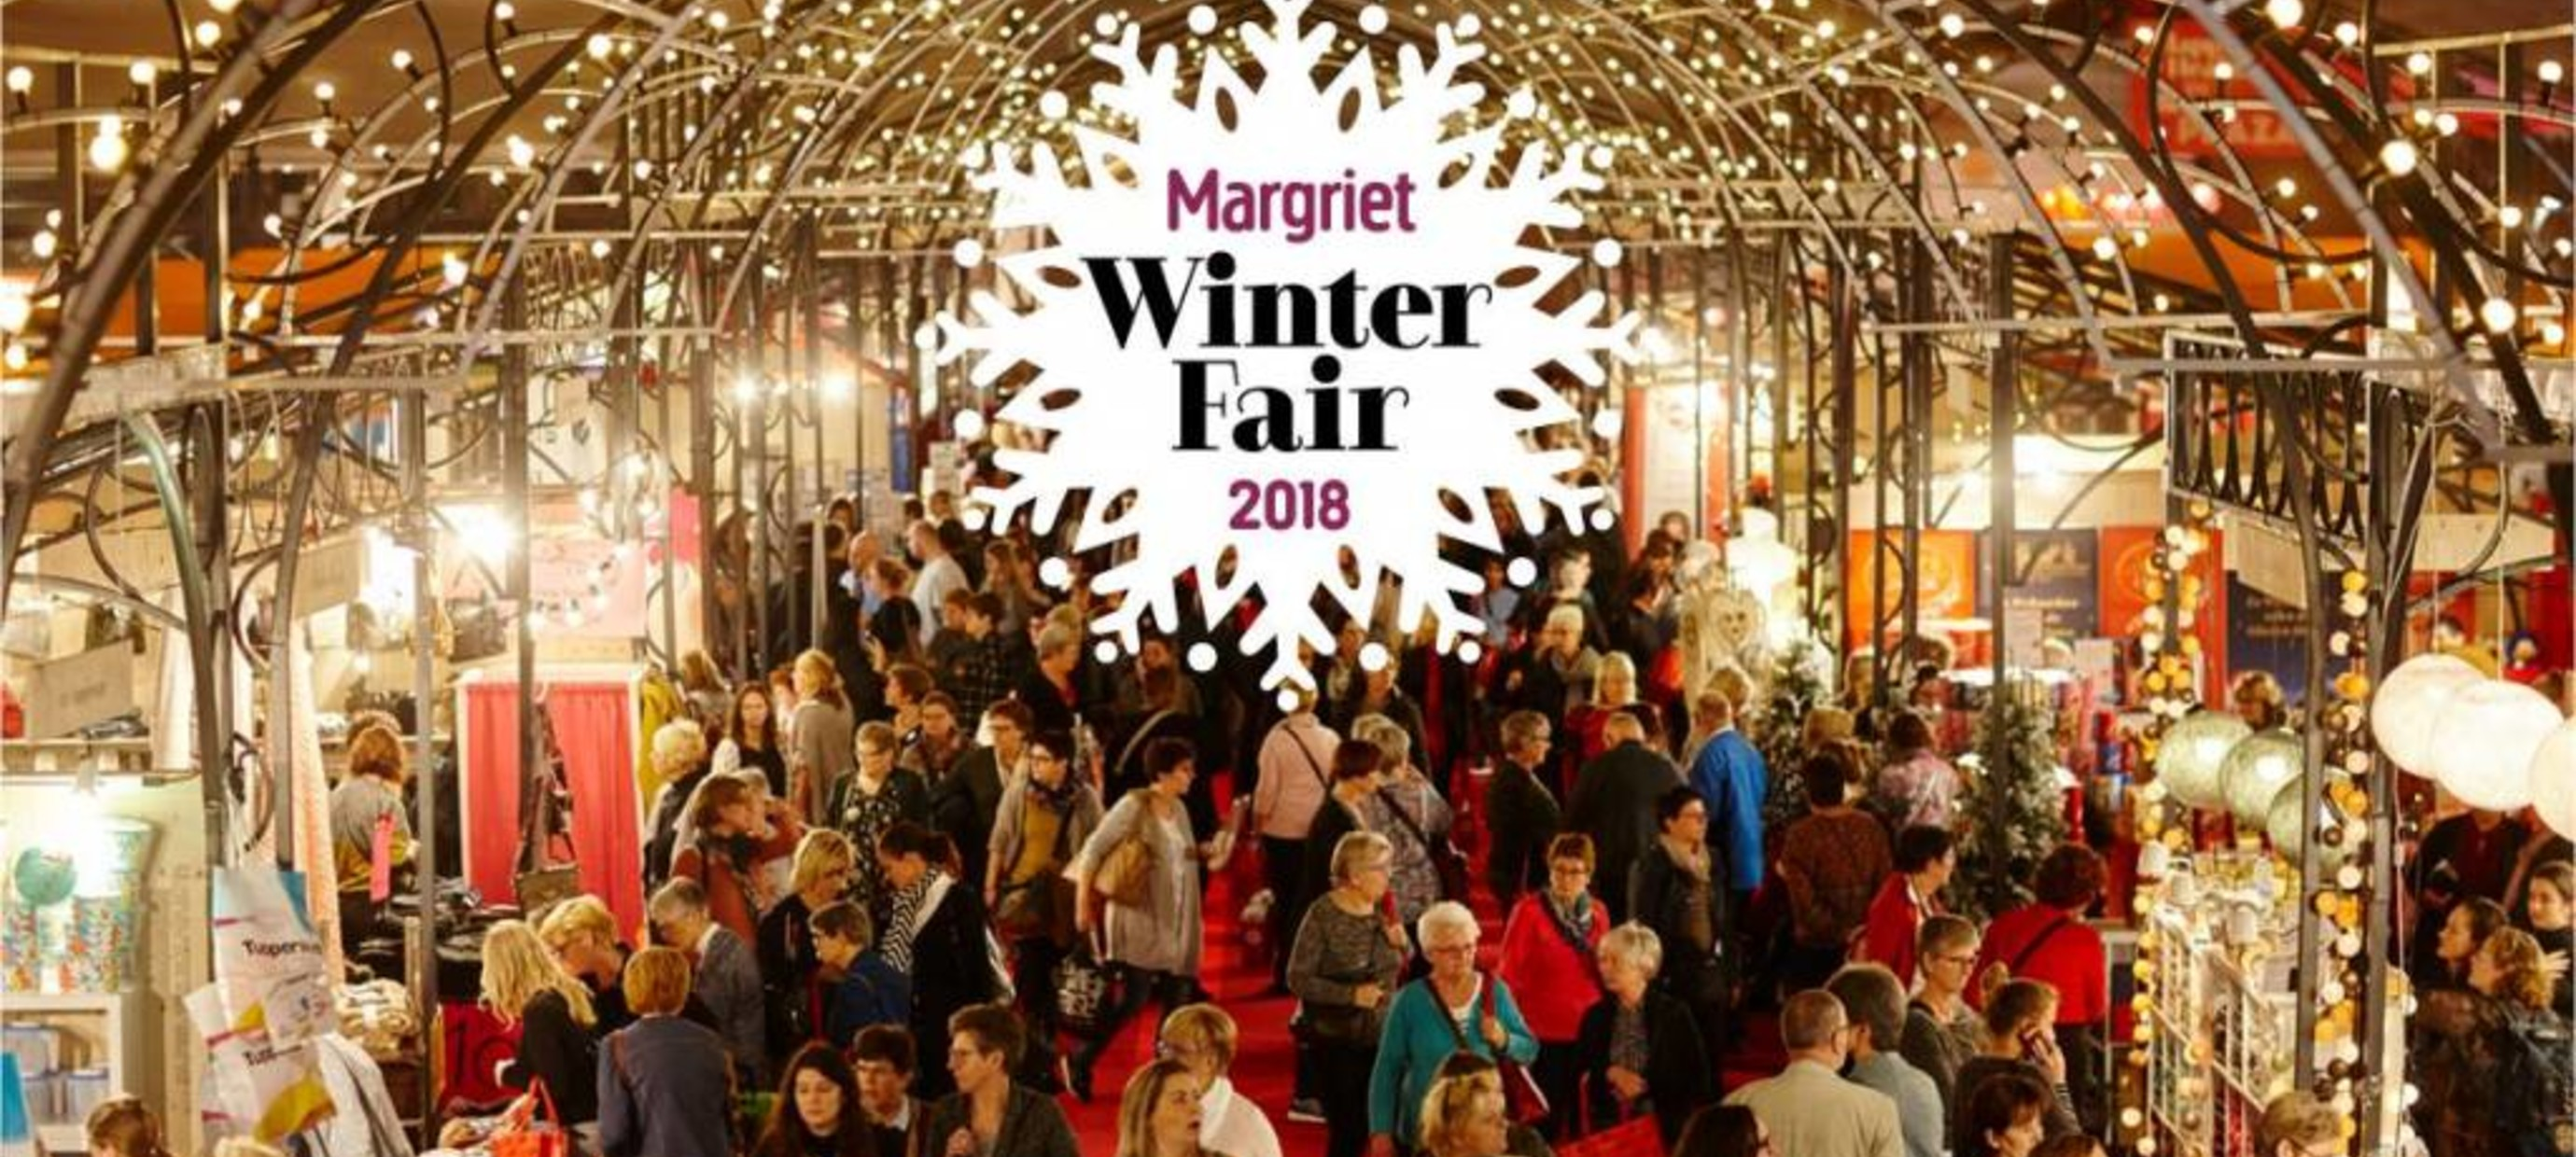 Chaos and Order op de Margriet Winterfair